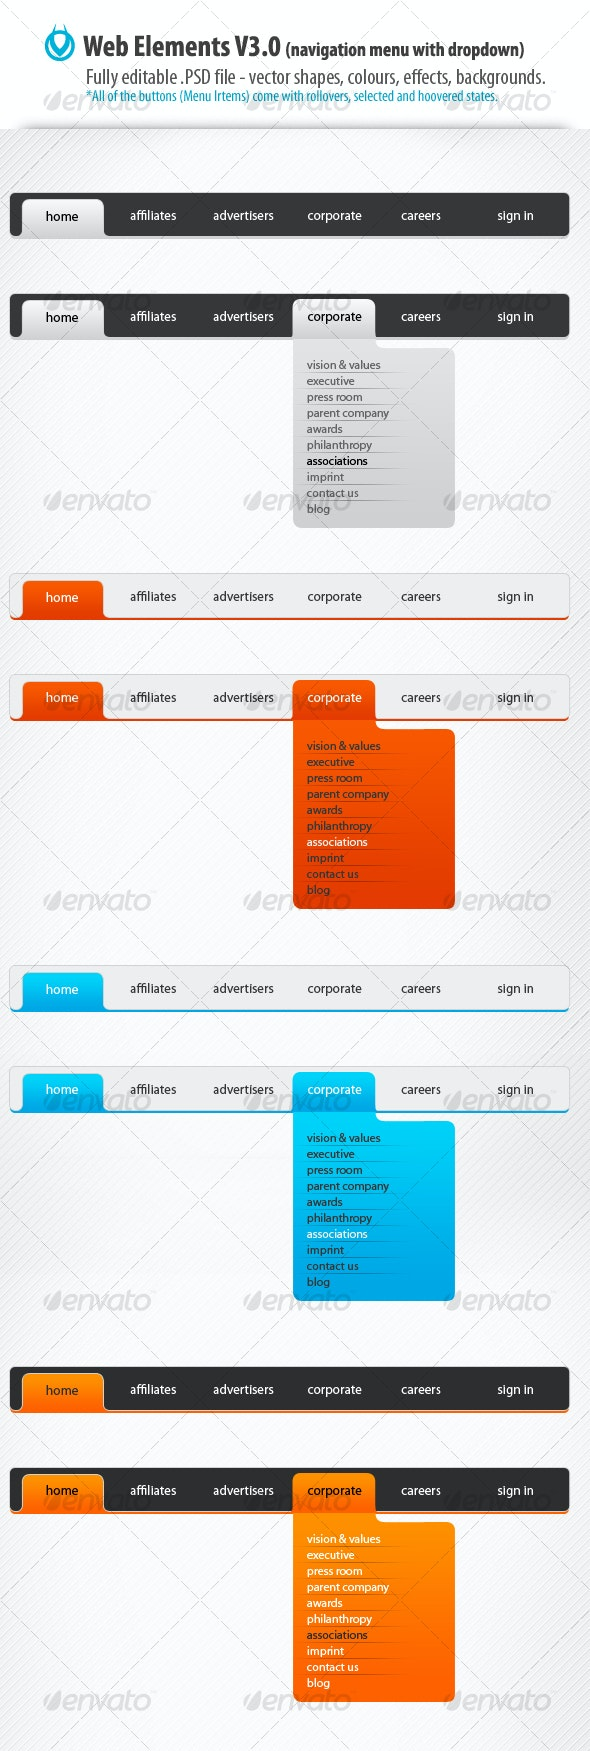 Web Elements v3.0 by VO - Web Elements